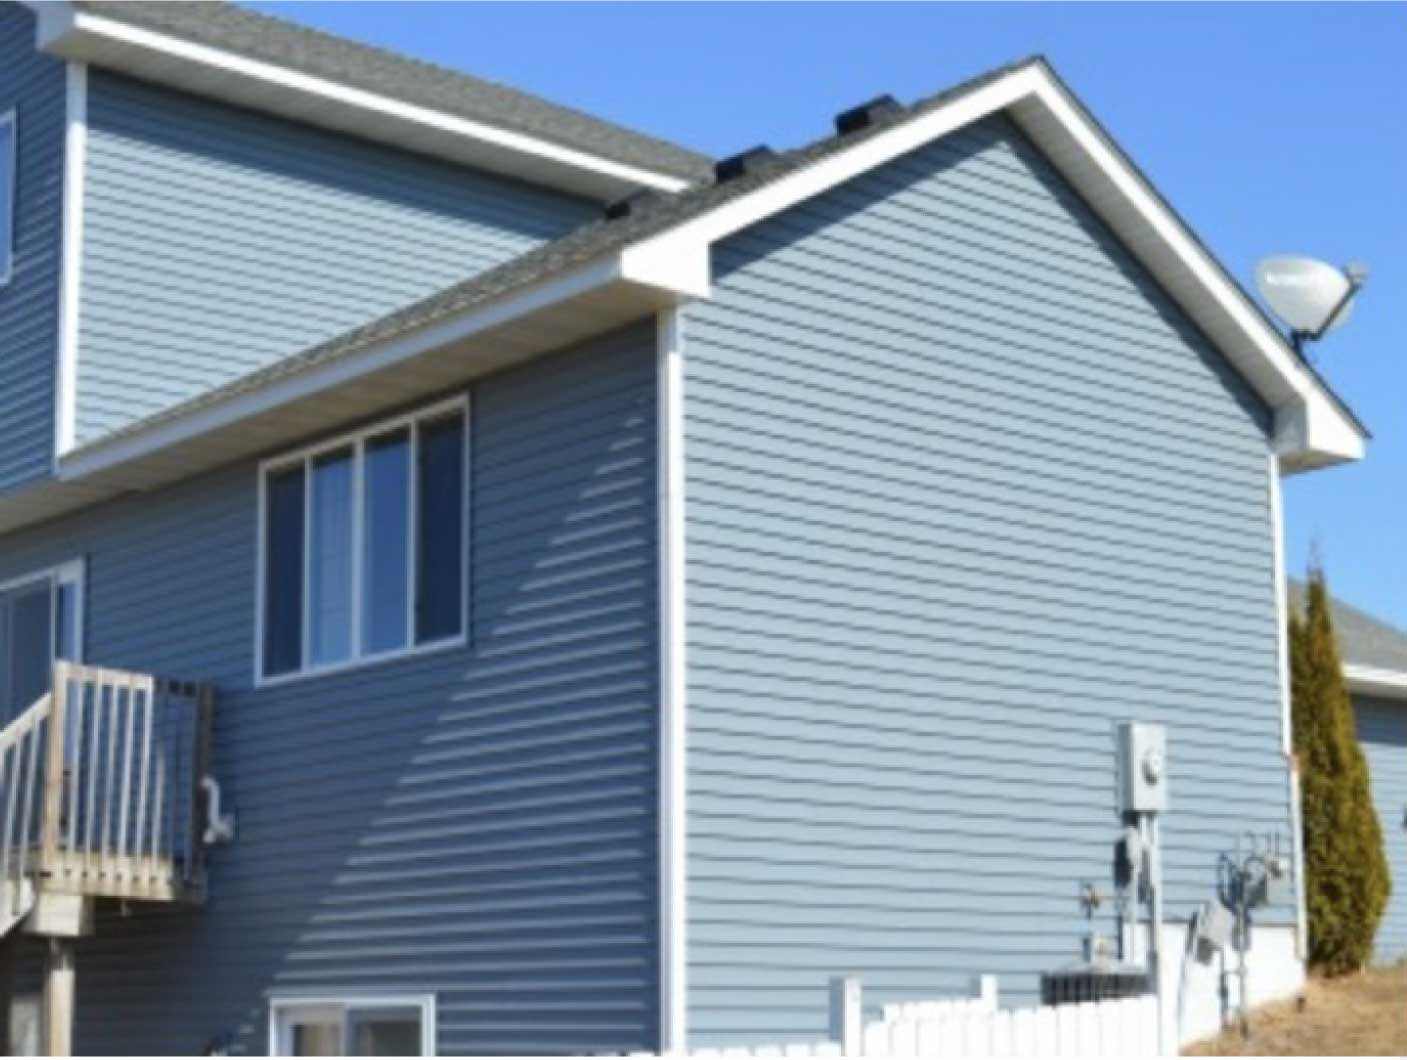 Home with blue siding and grey roof